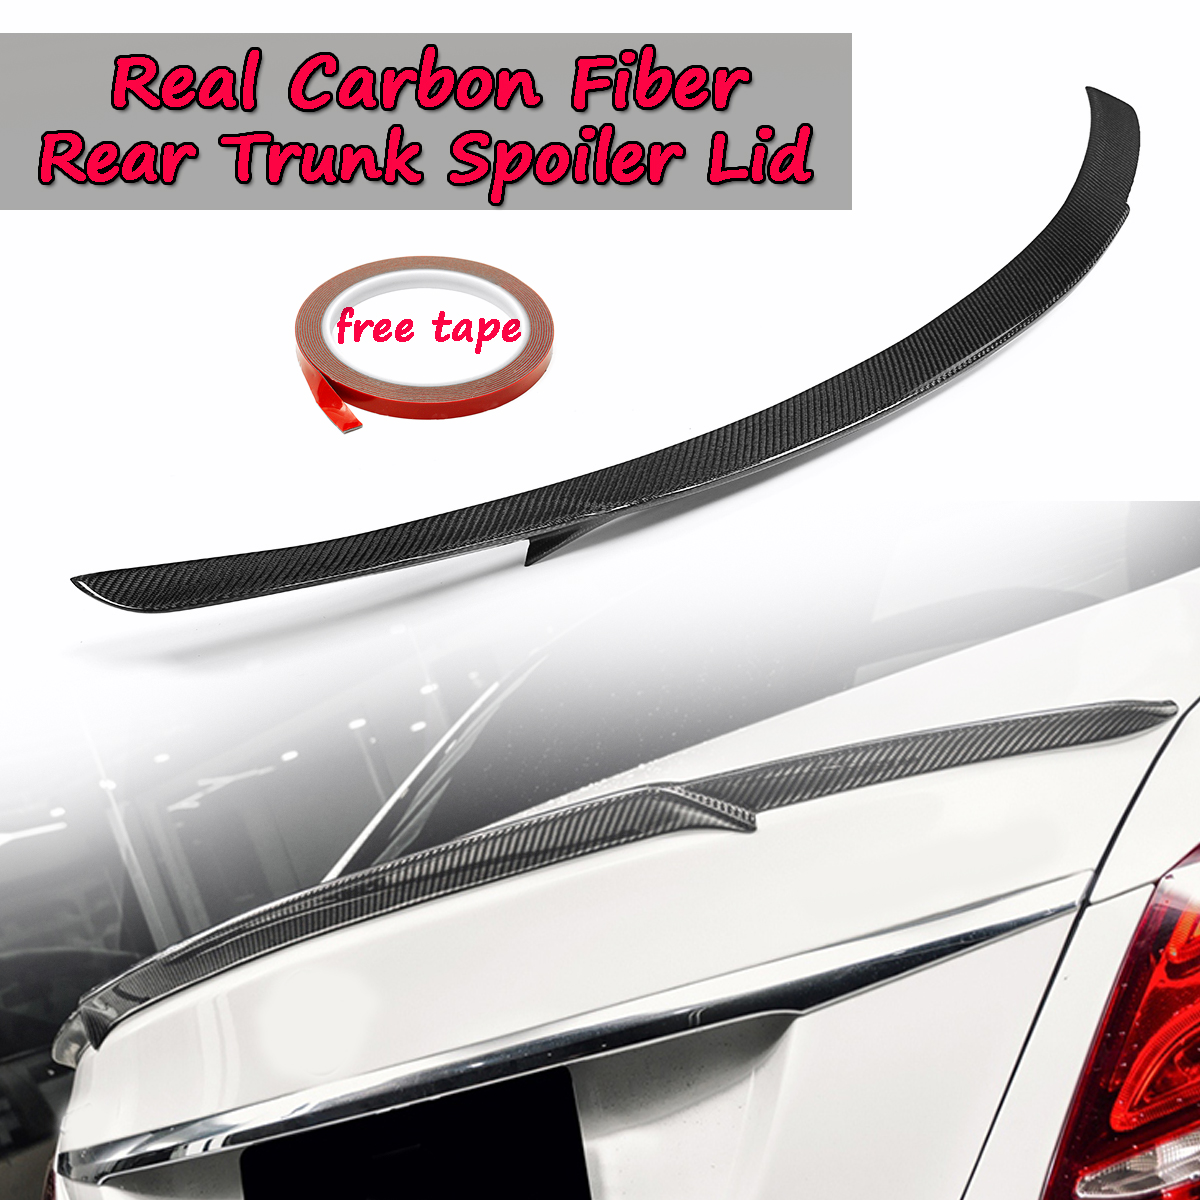 Real Carbon Fiber Trunk Spoiler Lid For Mercedes-Benz W205 C-Class & C63 For AMG S B STYLE 2015-2018 Rear Tunk Rear Wing Spoiler carbon fiber rear roof spoiler window wing frp black for mercedes benz c class s205 wagon hatchblack 4 door 15 18 not for amg